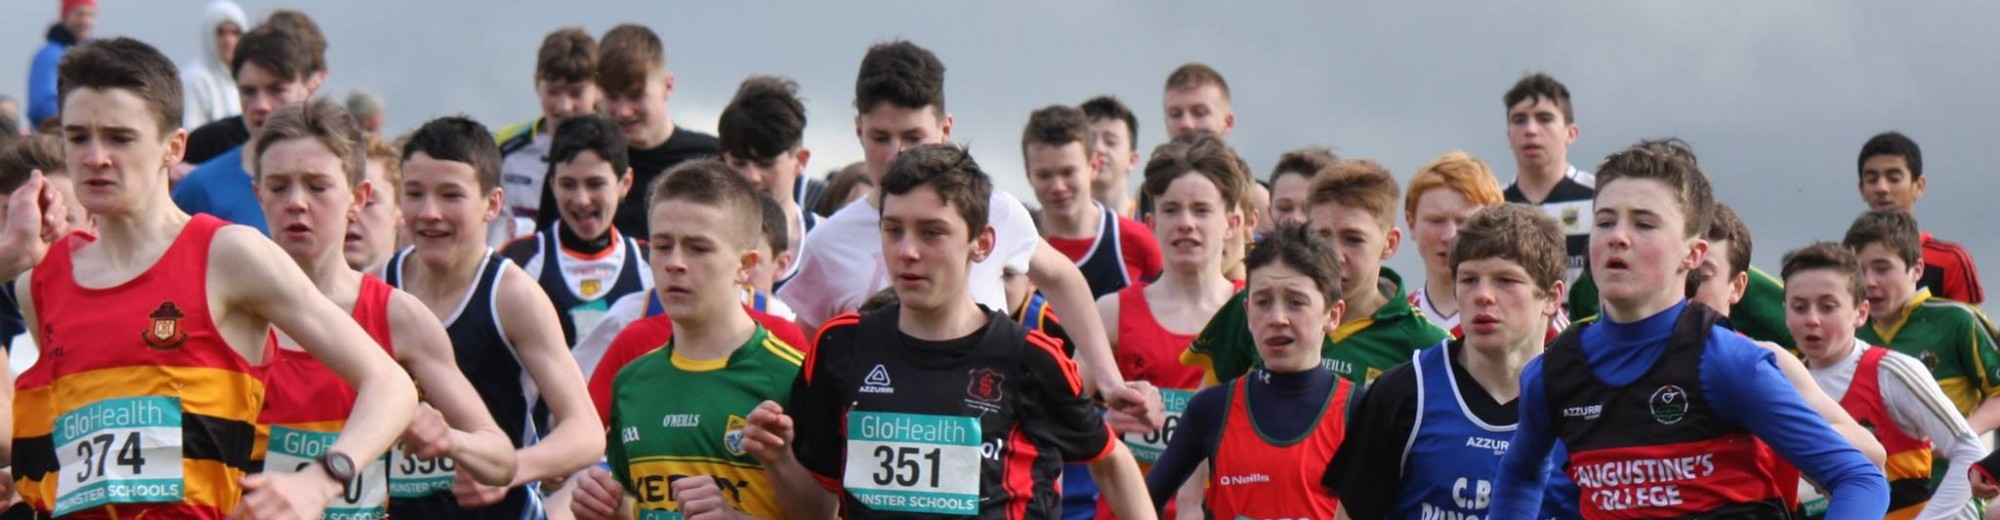 Munster Schools Athletic Association